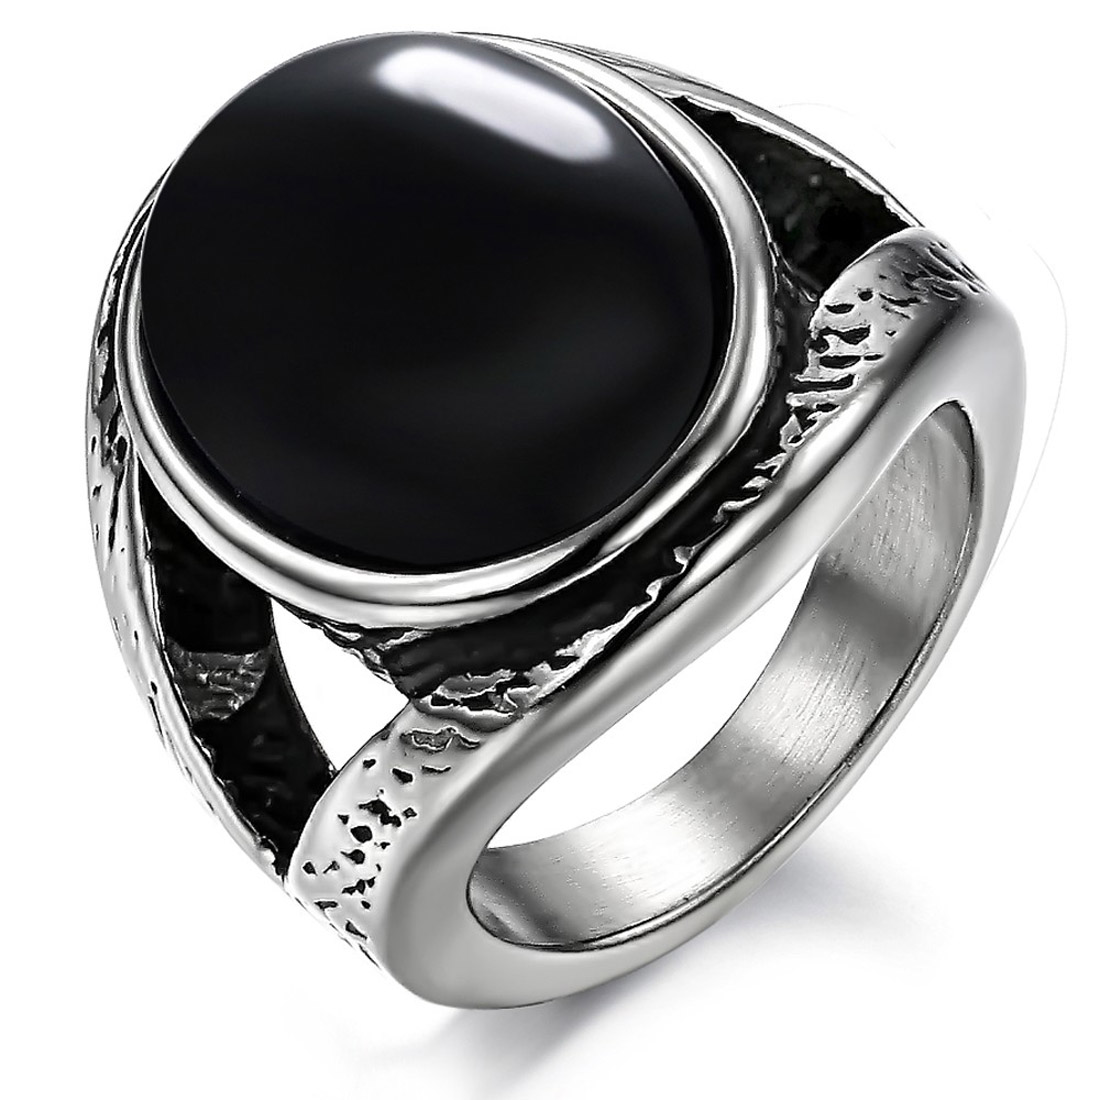 wedding plated itm rhodium jewellery jewelry fashion loading size image rings is sapphire white black s